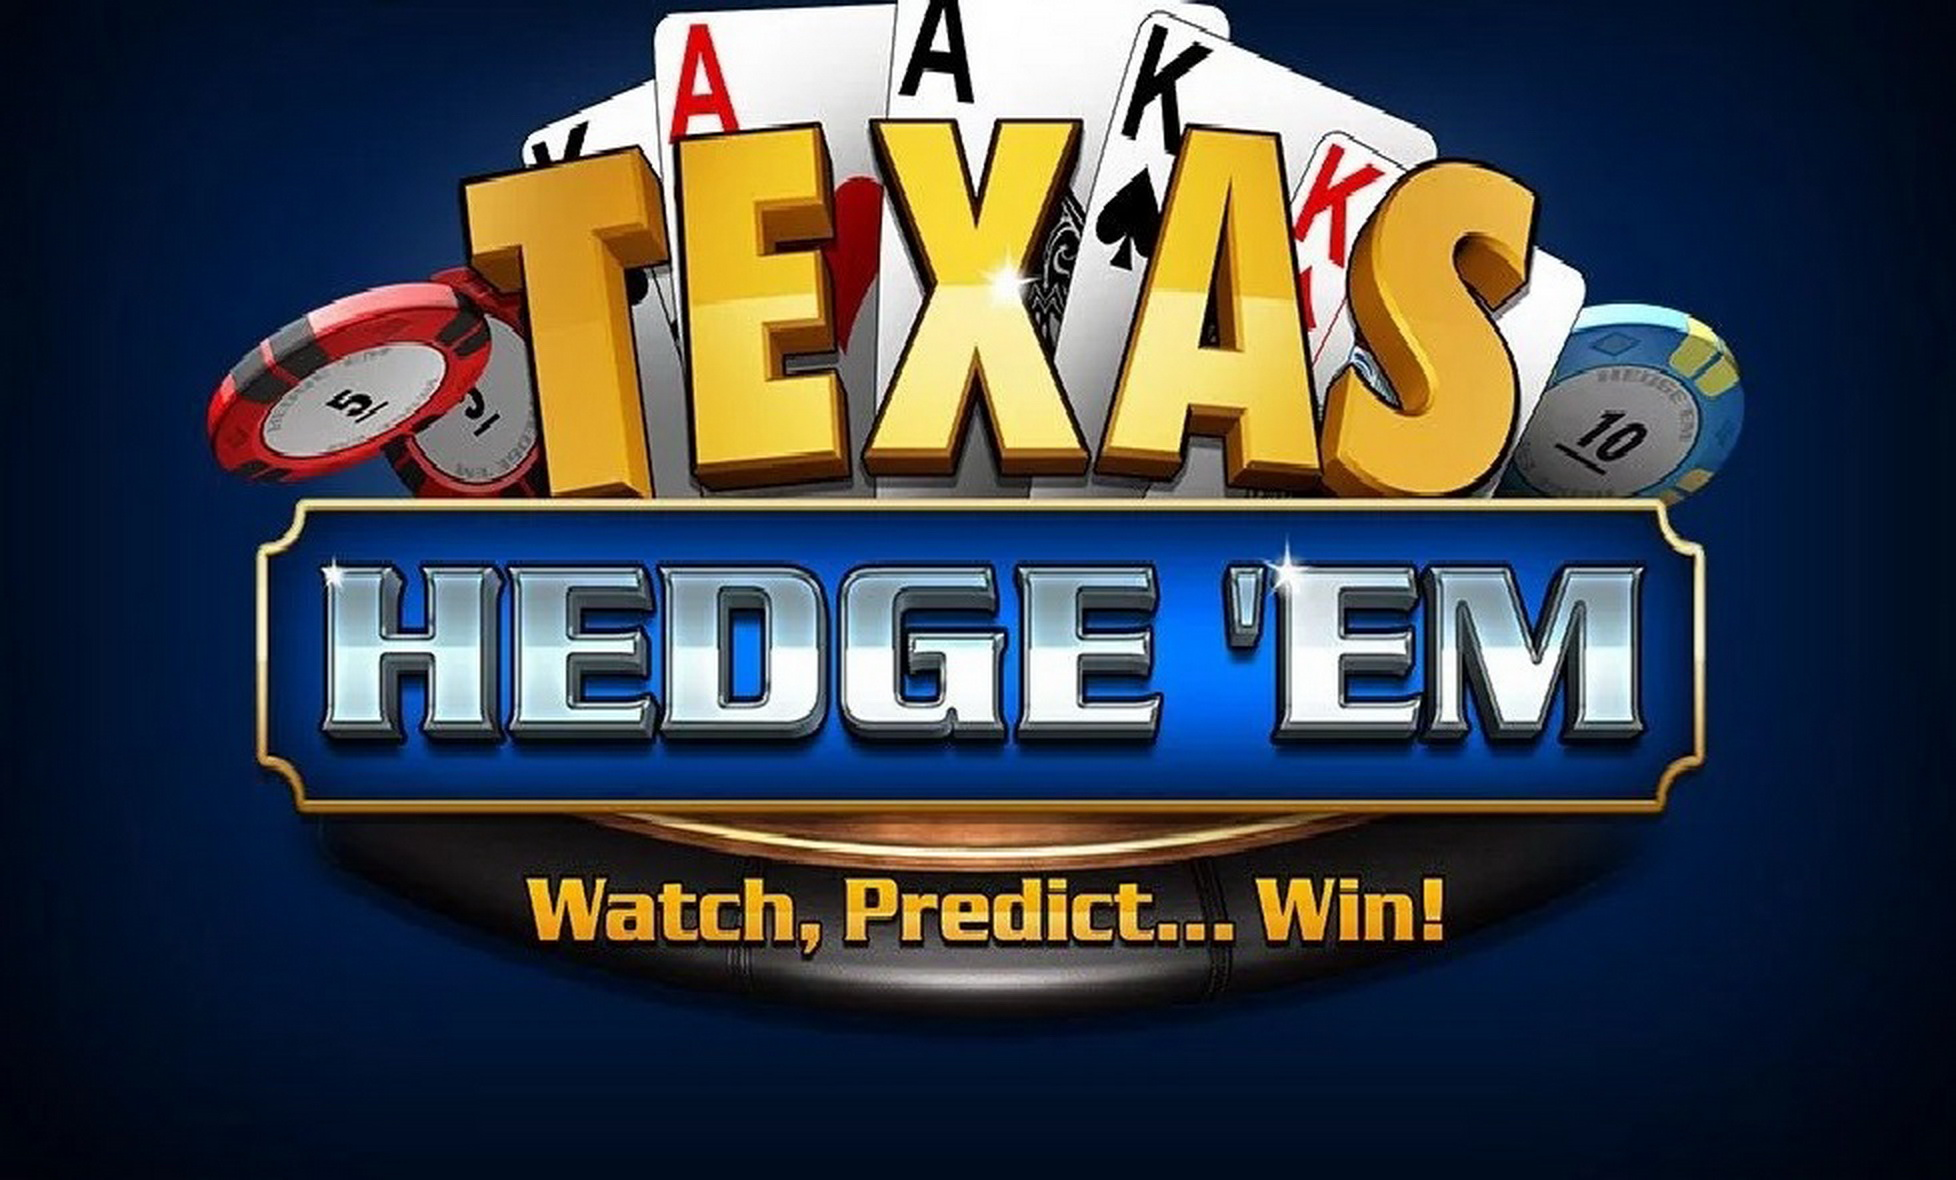 Se Texas Hedge 'Em Online Slot Demo Game, Qeetoto